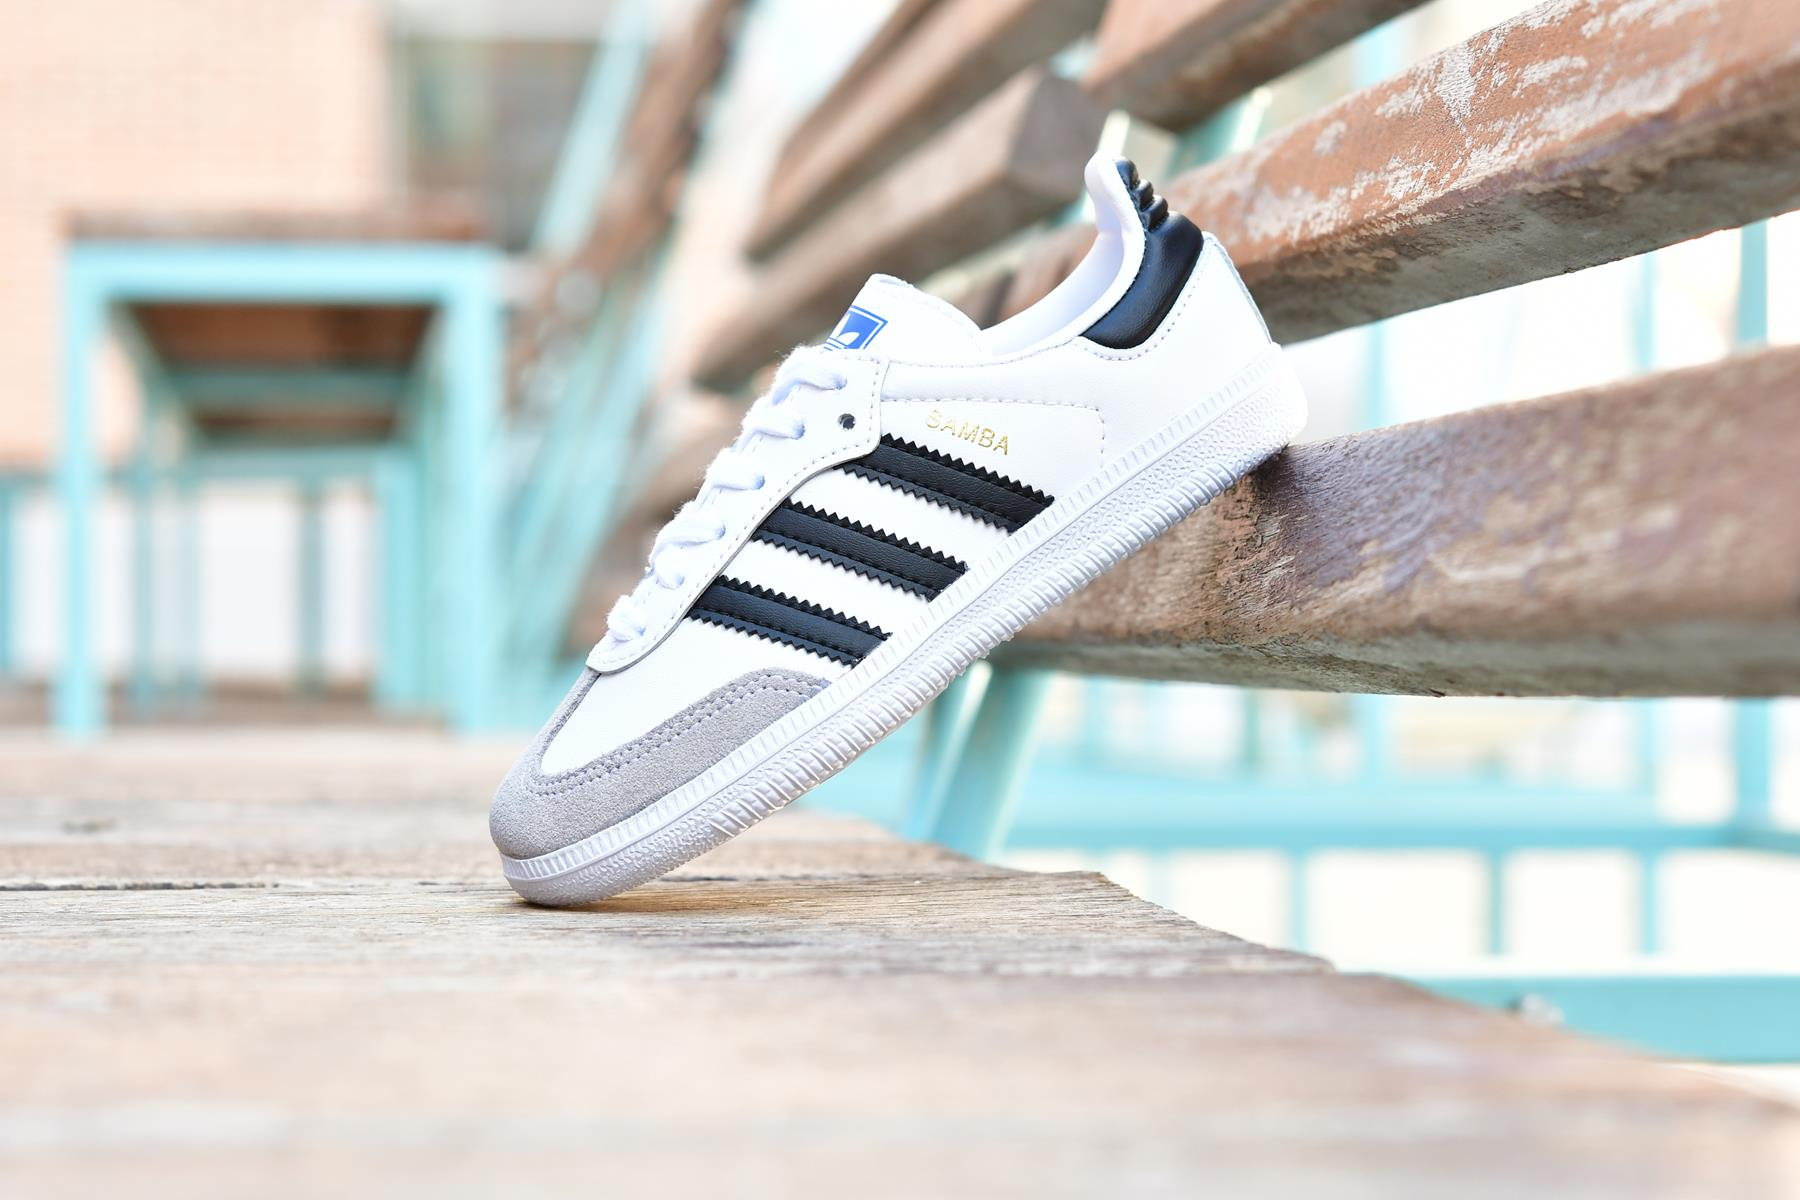 ADIDAS ORIGINALS Niños & Niñas BB6975_AmorShoes-Adidas-Originals-Samba-OG-Cloud-White-Core-Black-Crystal-White-Zapatilla-niño-niña-blanca-piel-cordones-rayas-negras-puntera-piel-vuelta-BB6975